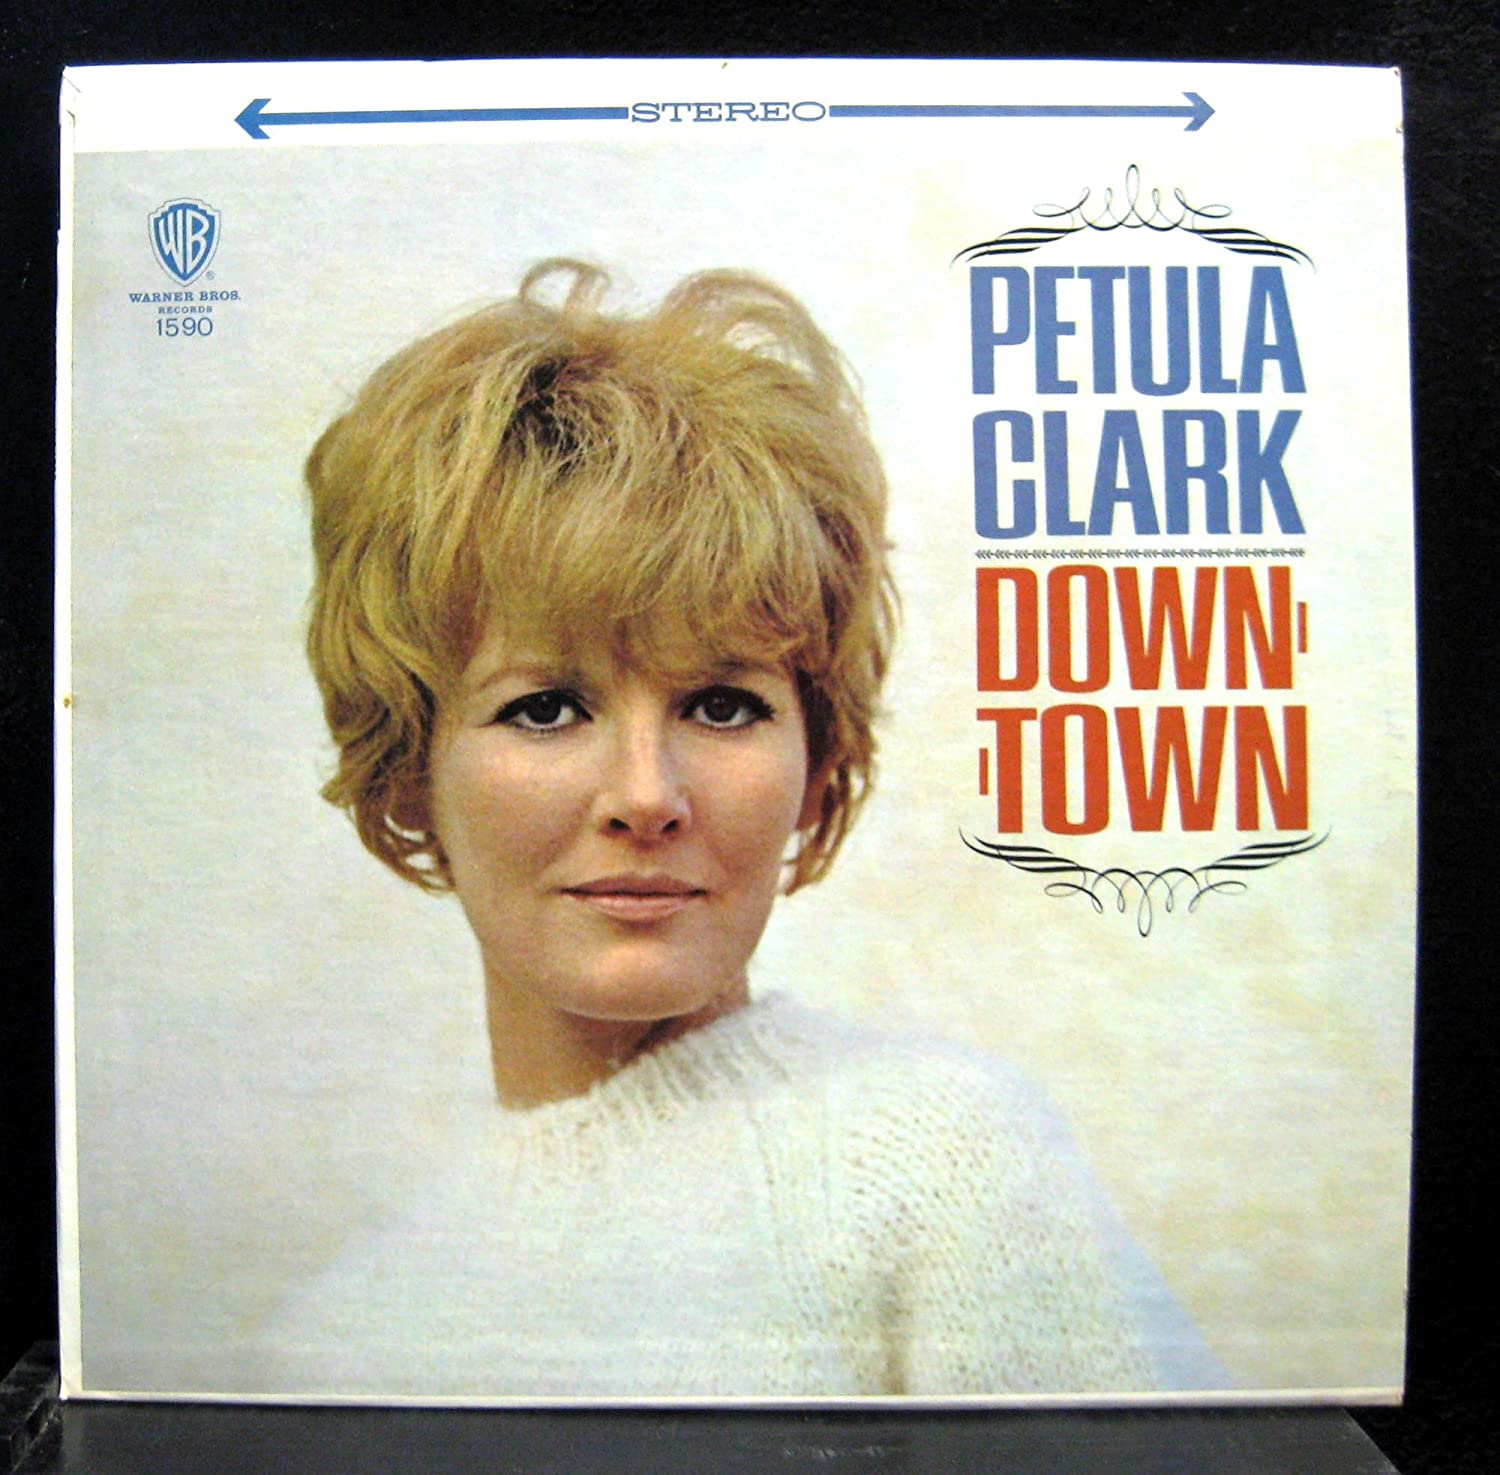 Petula Clark Downtown Vinyl Record Amazon Com Music Petula clark — every little bit hurts. petula clark downtown vinyl record